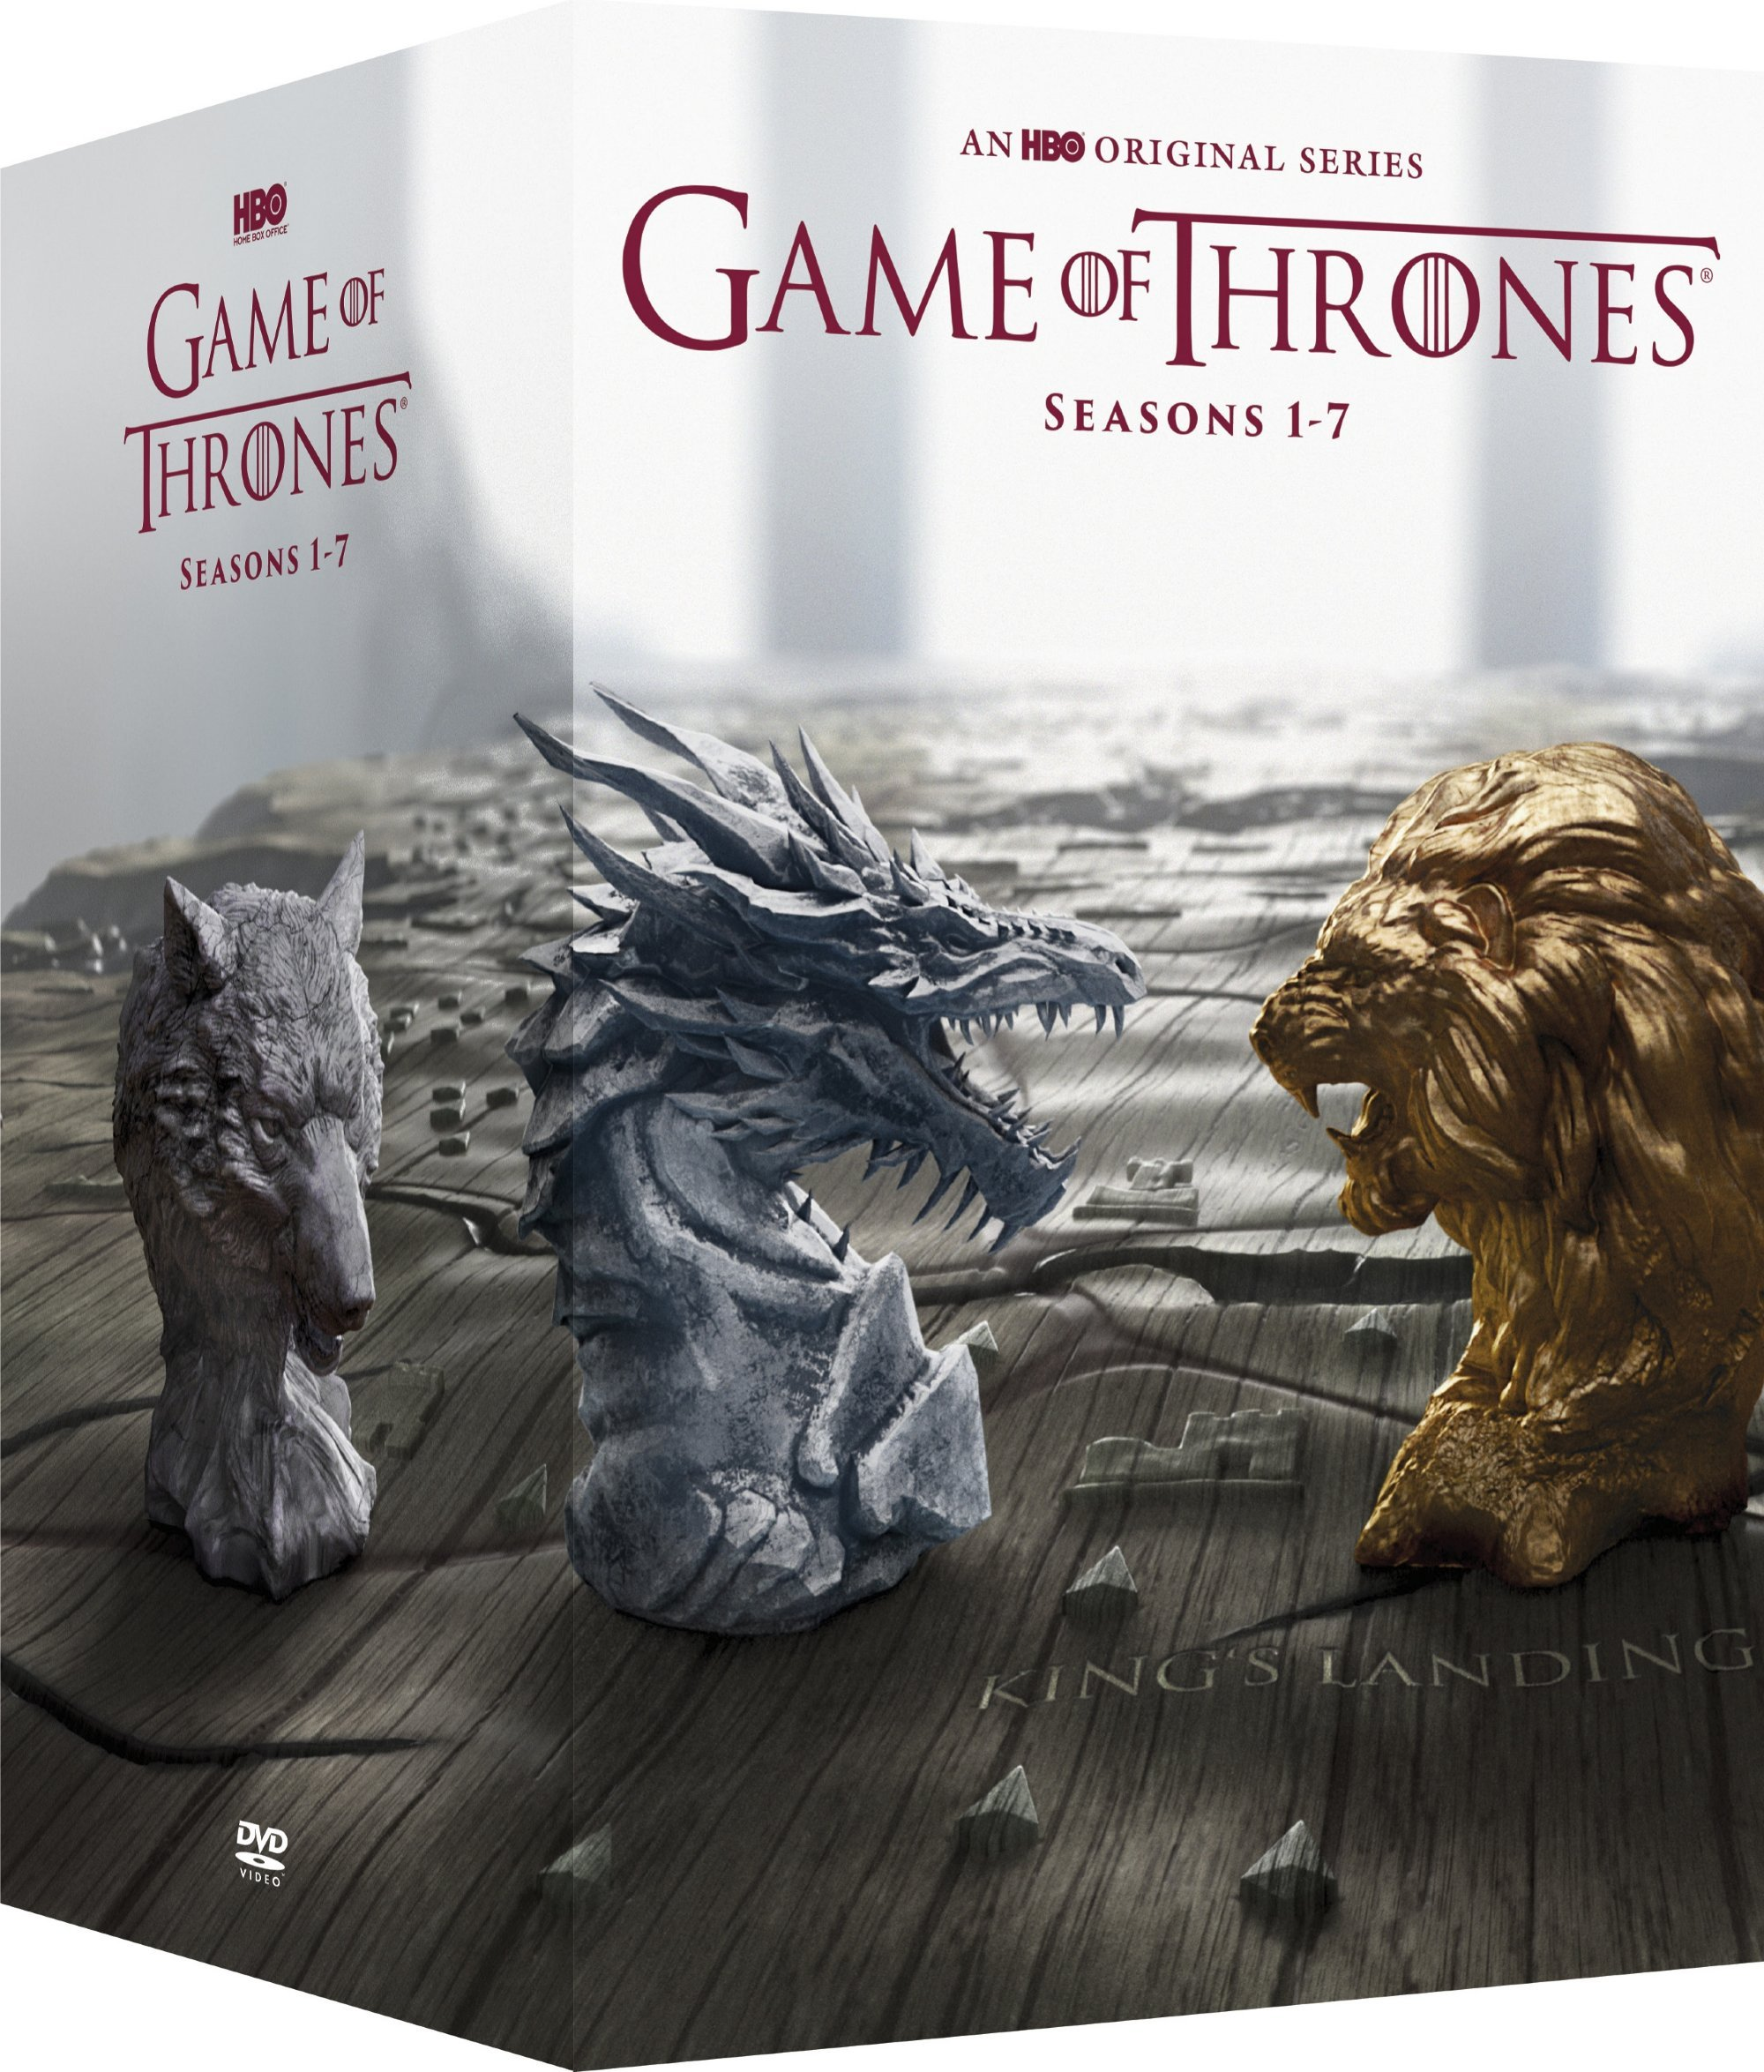 Game of Thrones: The Complete Seasons 1-7 (DVD) by HBO